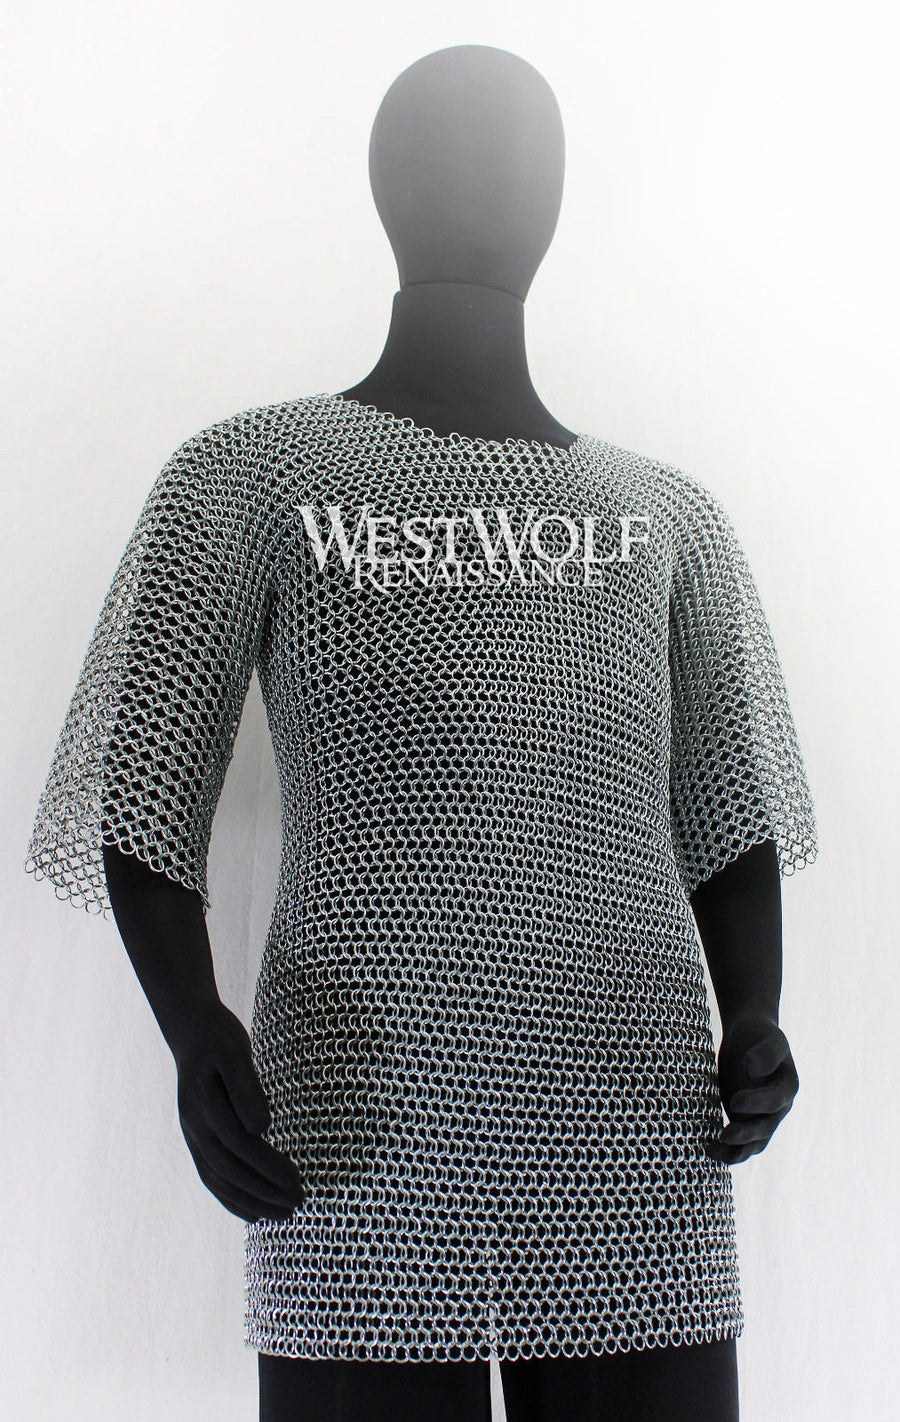 Steel Chainmail Haubergeon Replica Armor Long Shirt